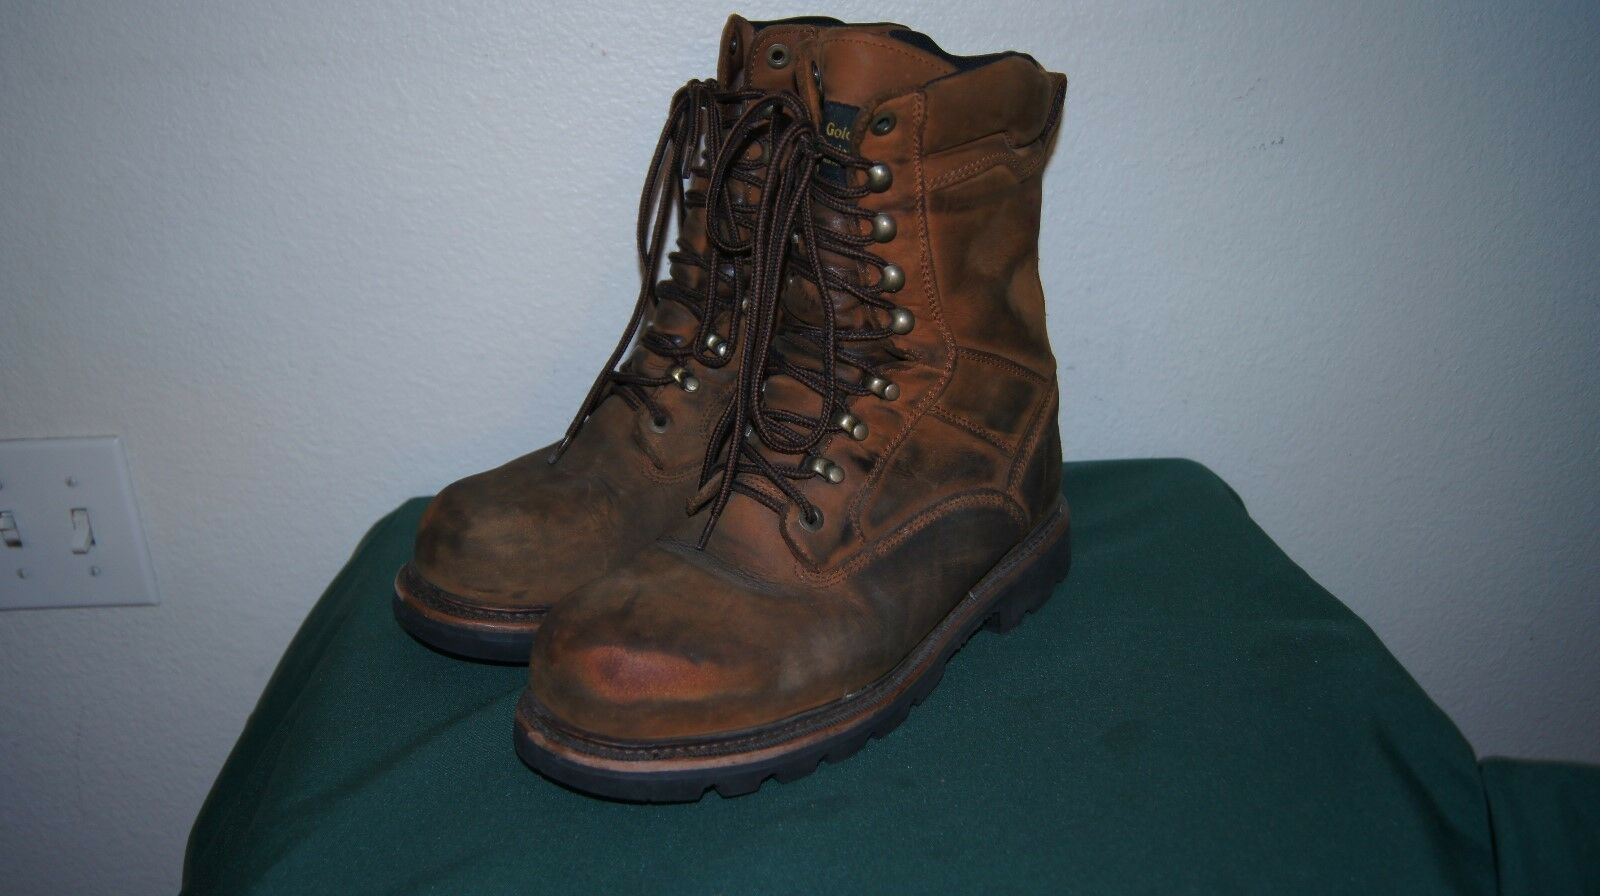 Men's Brown goldEN RETRIEVER Logger Work Boots 9 W - Lace-Up STEEL TOE